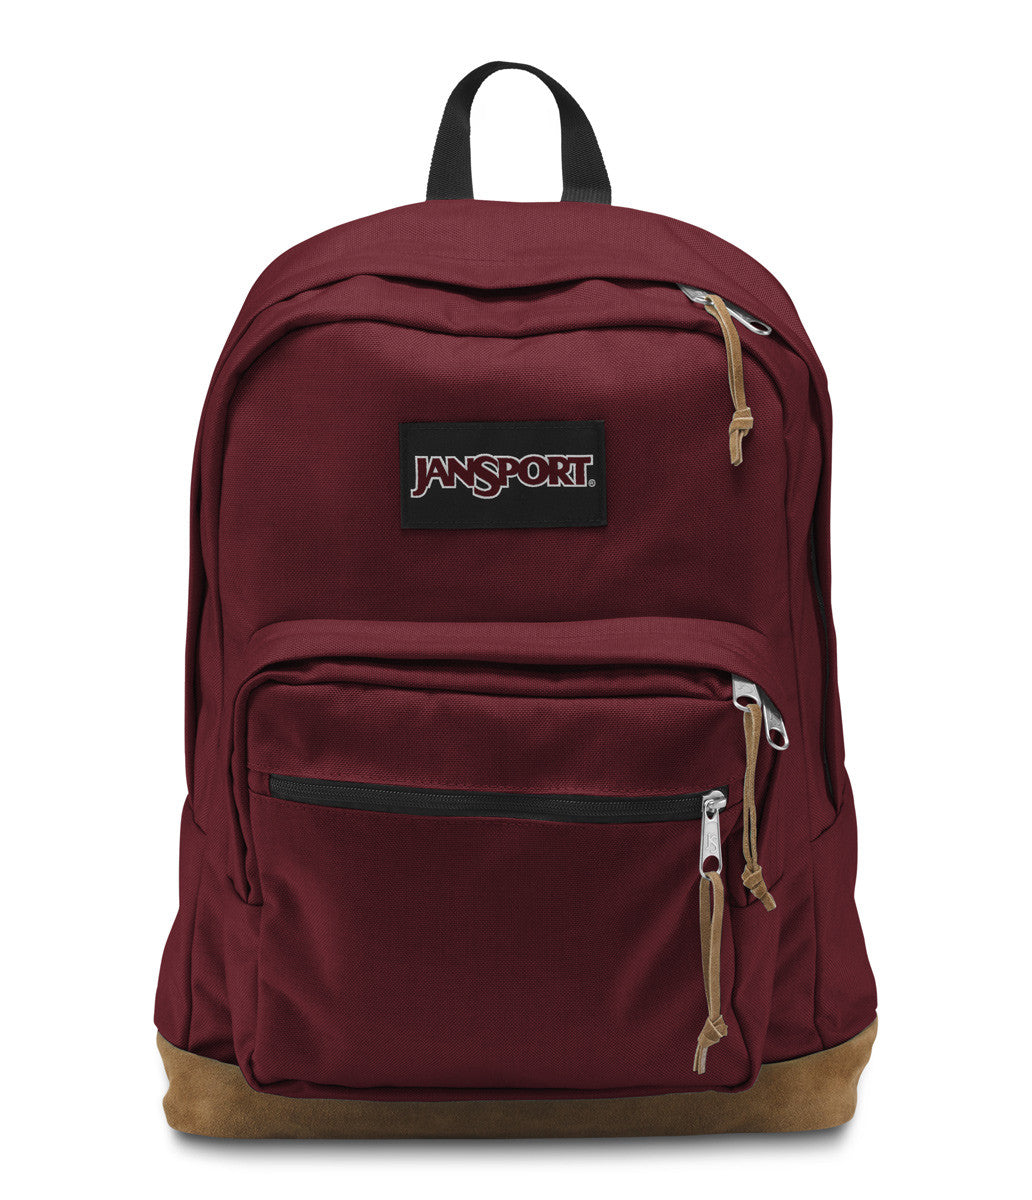 JANSPORT Right Pack Backpack - Viking Red - New Star a5feb6c79